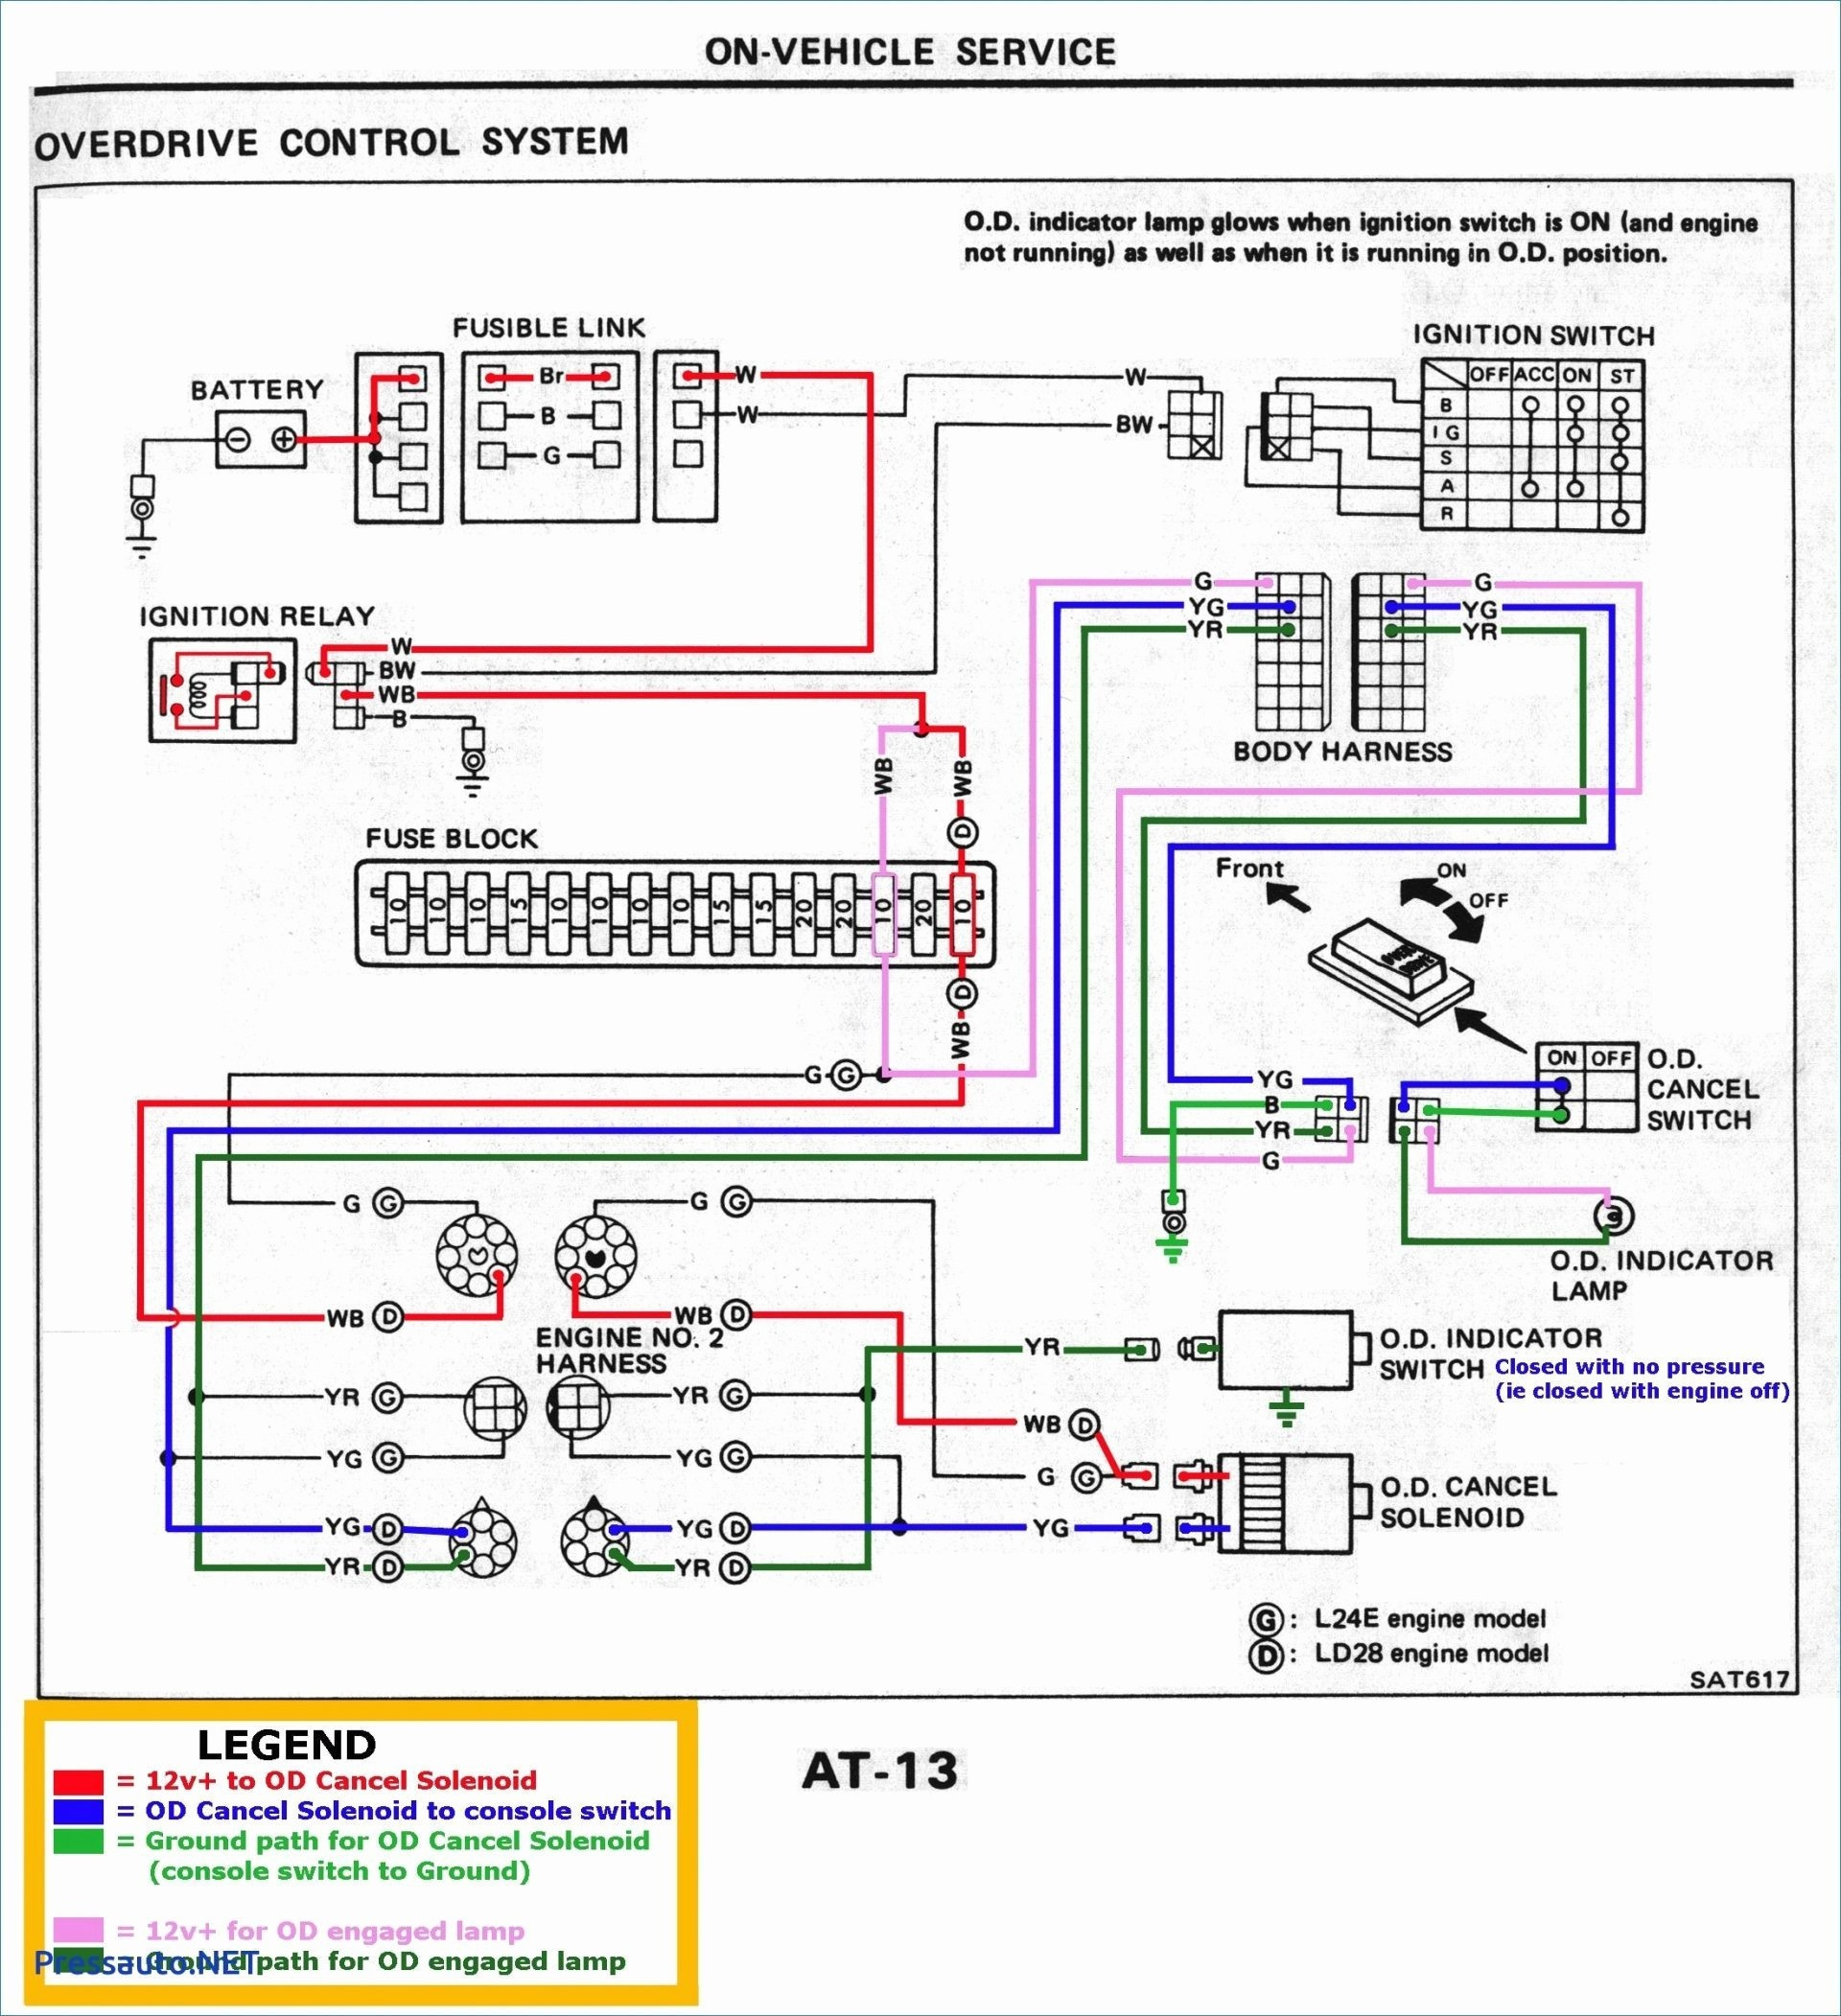 Obd1 Vtec Wiring Diagram - Schematic Diagram Obd Distributor Wiring Diagram on obd1 distributor plug, obd1 vtec wiring, obd1 plug diagram, obd1 wiring diagram 1995 buick,